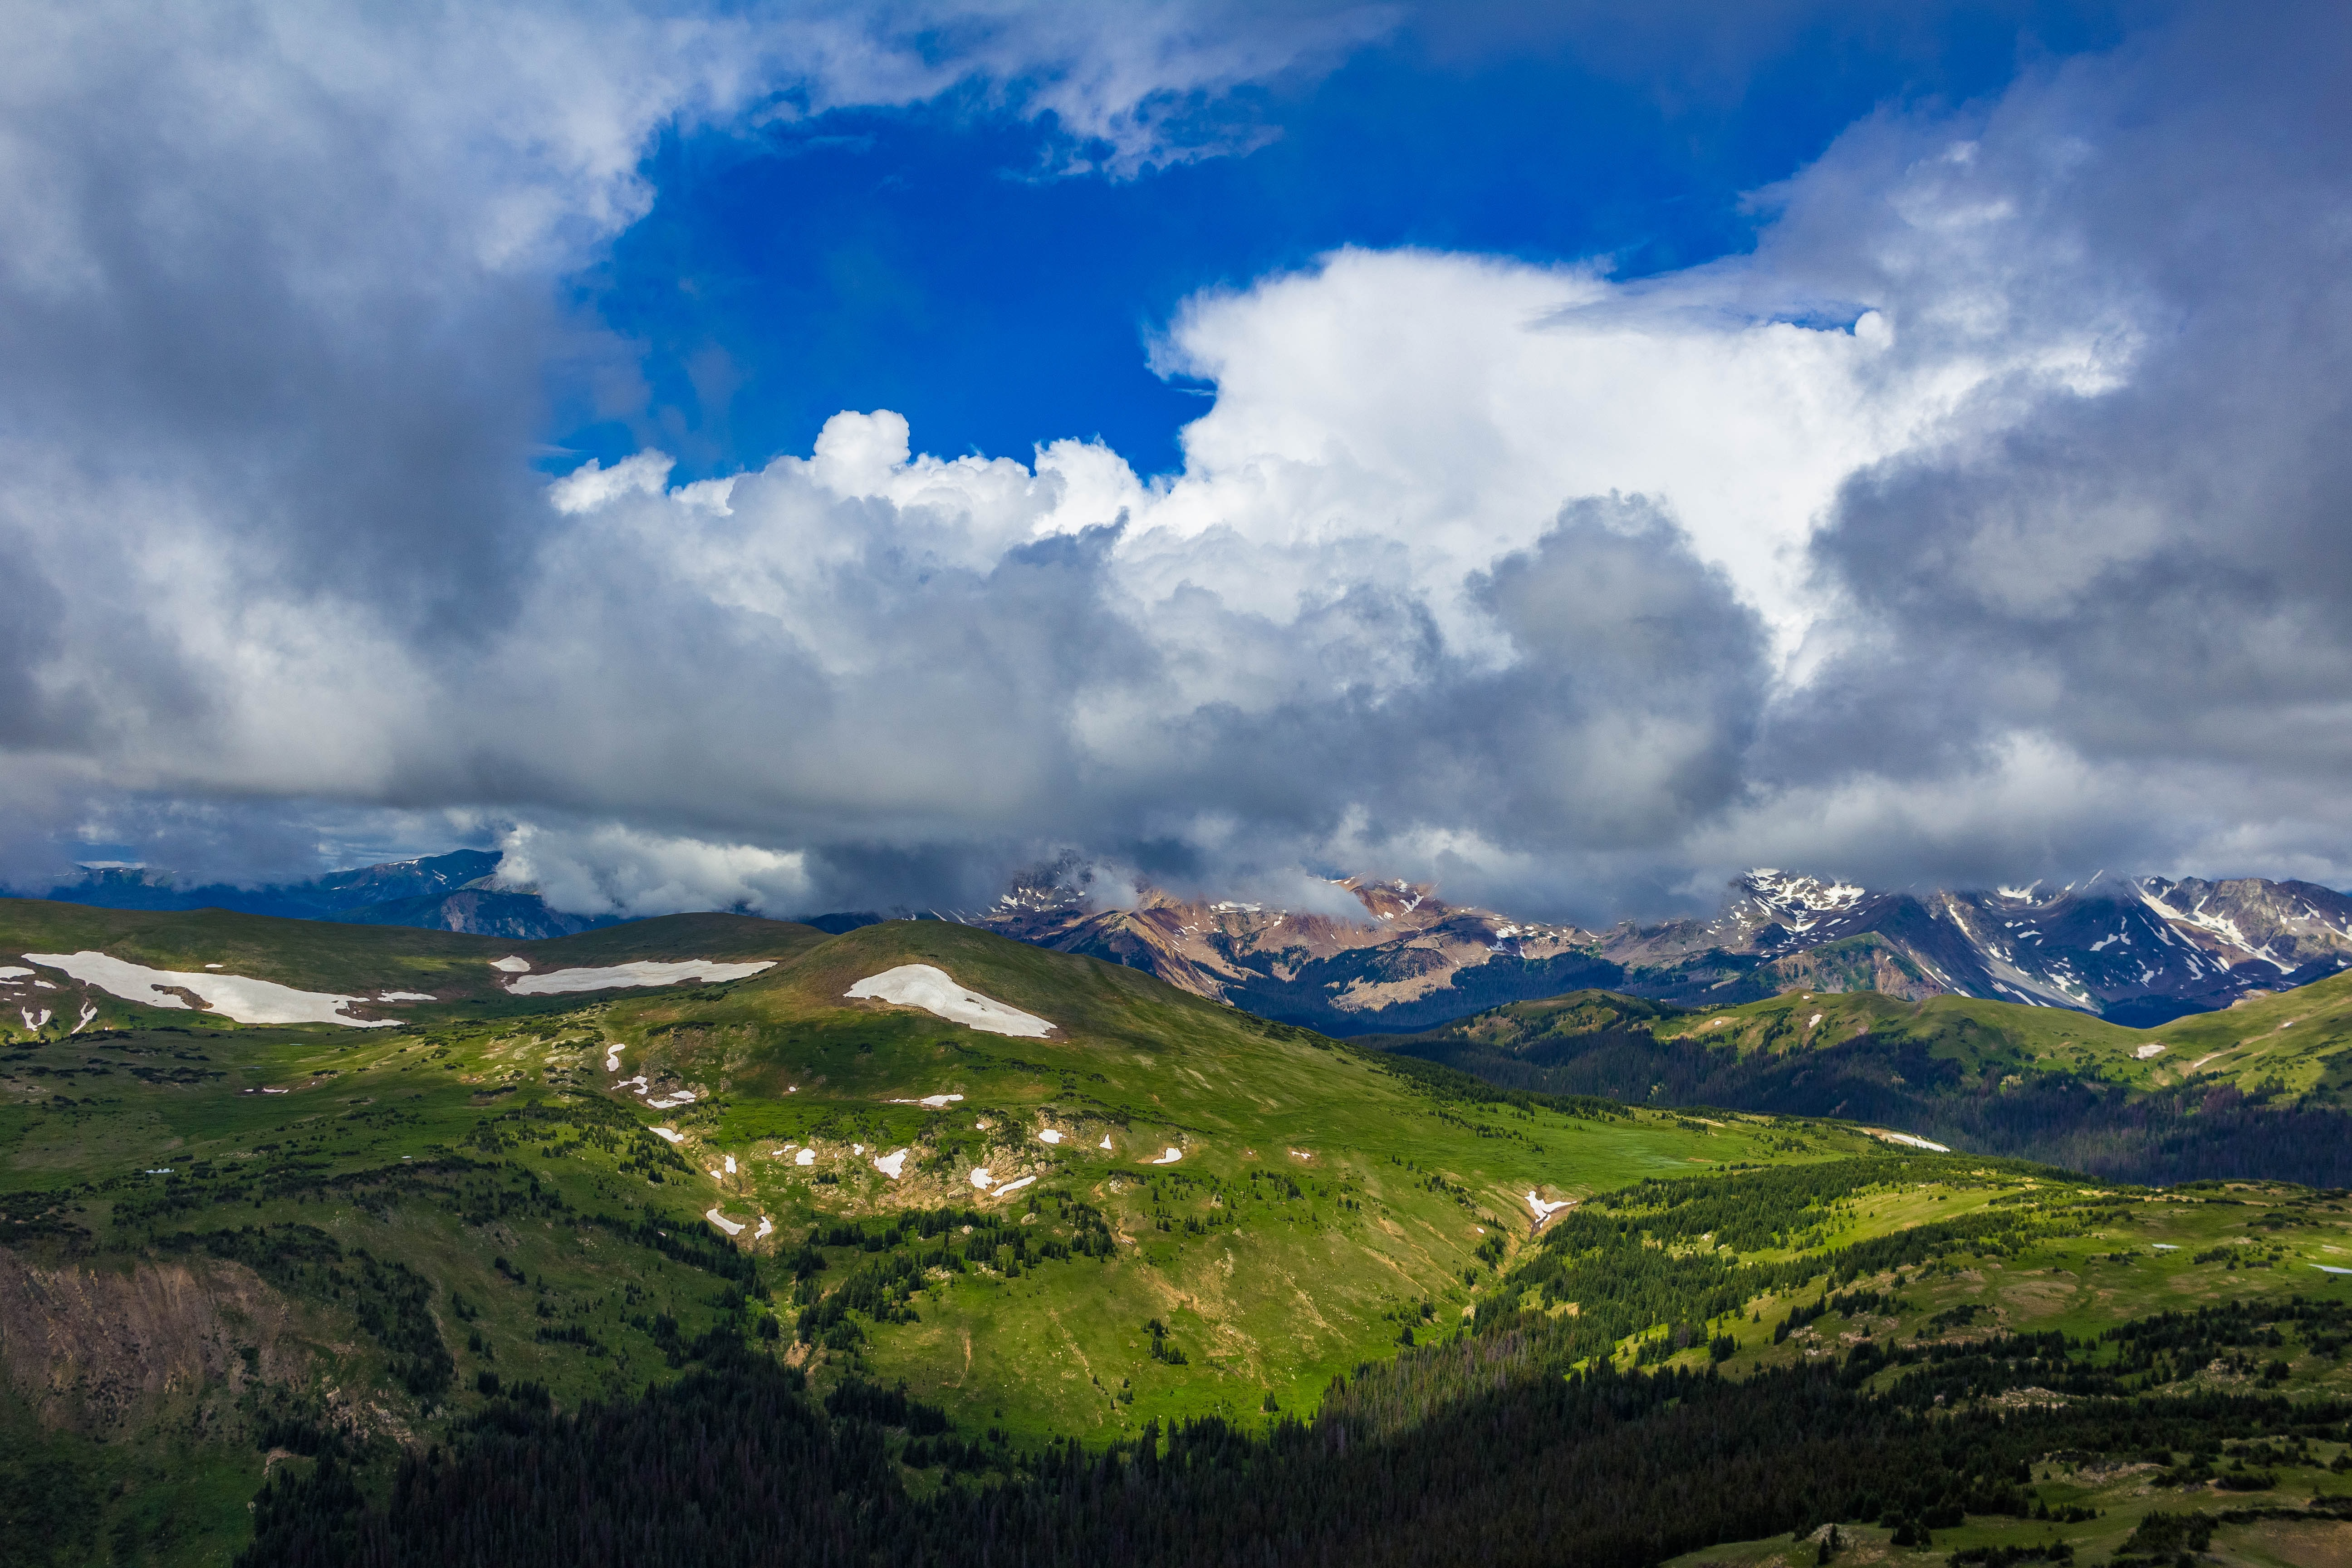 Clear sky with big fluffy clouds covering a lush green mountain with snow patches on Trail Ridge Road Summit.